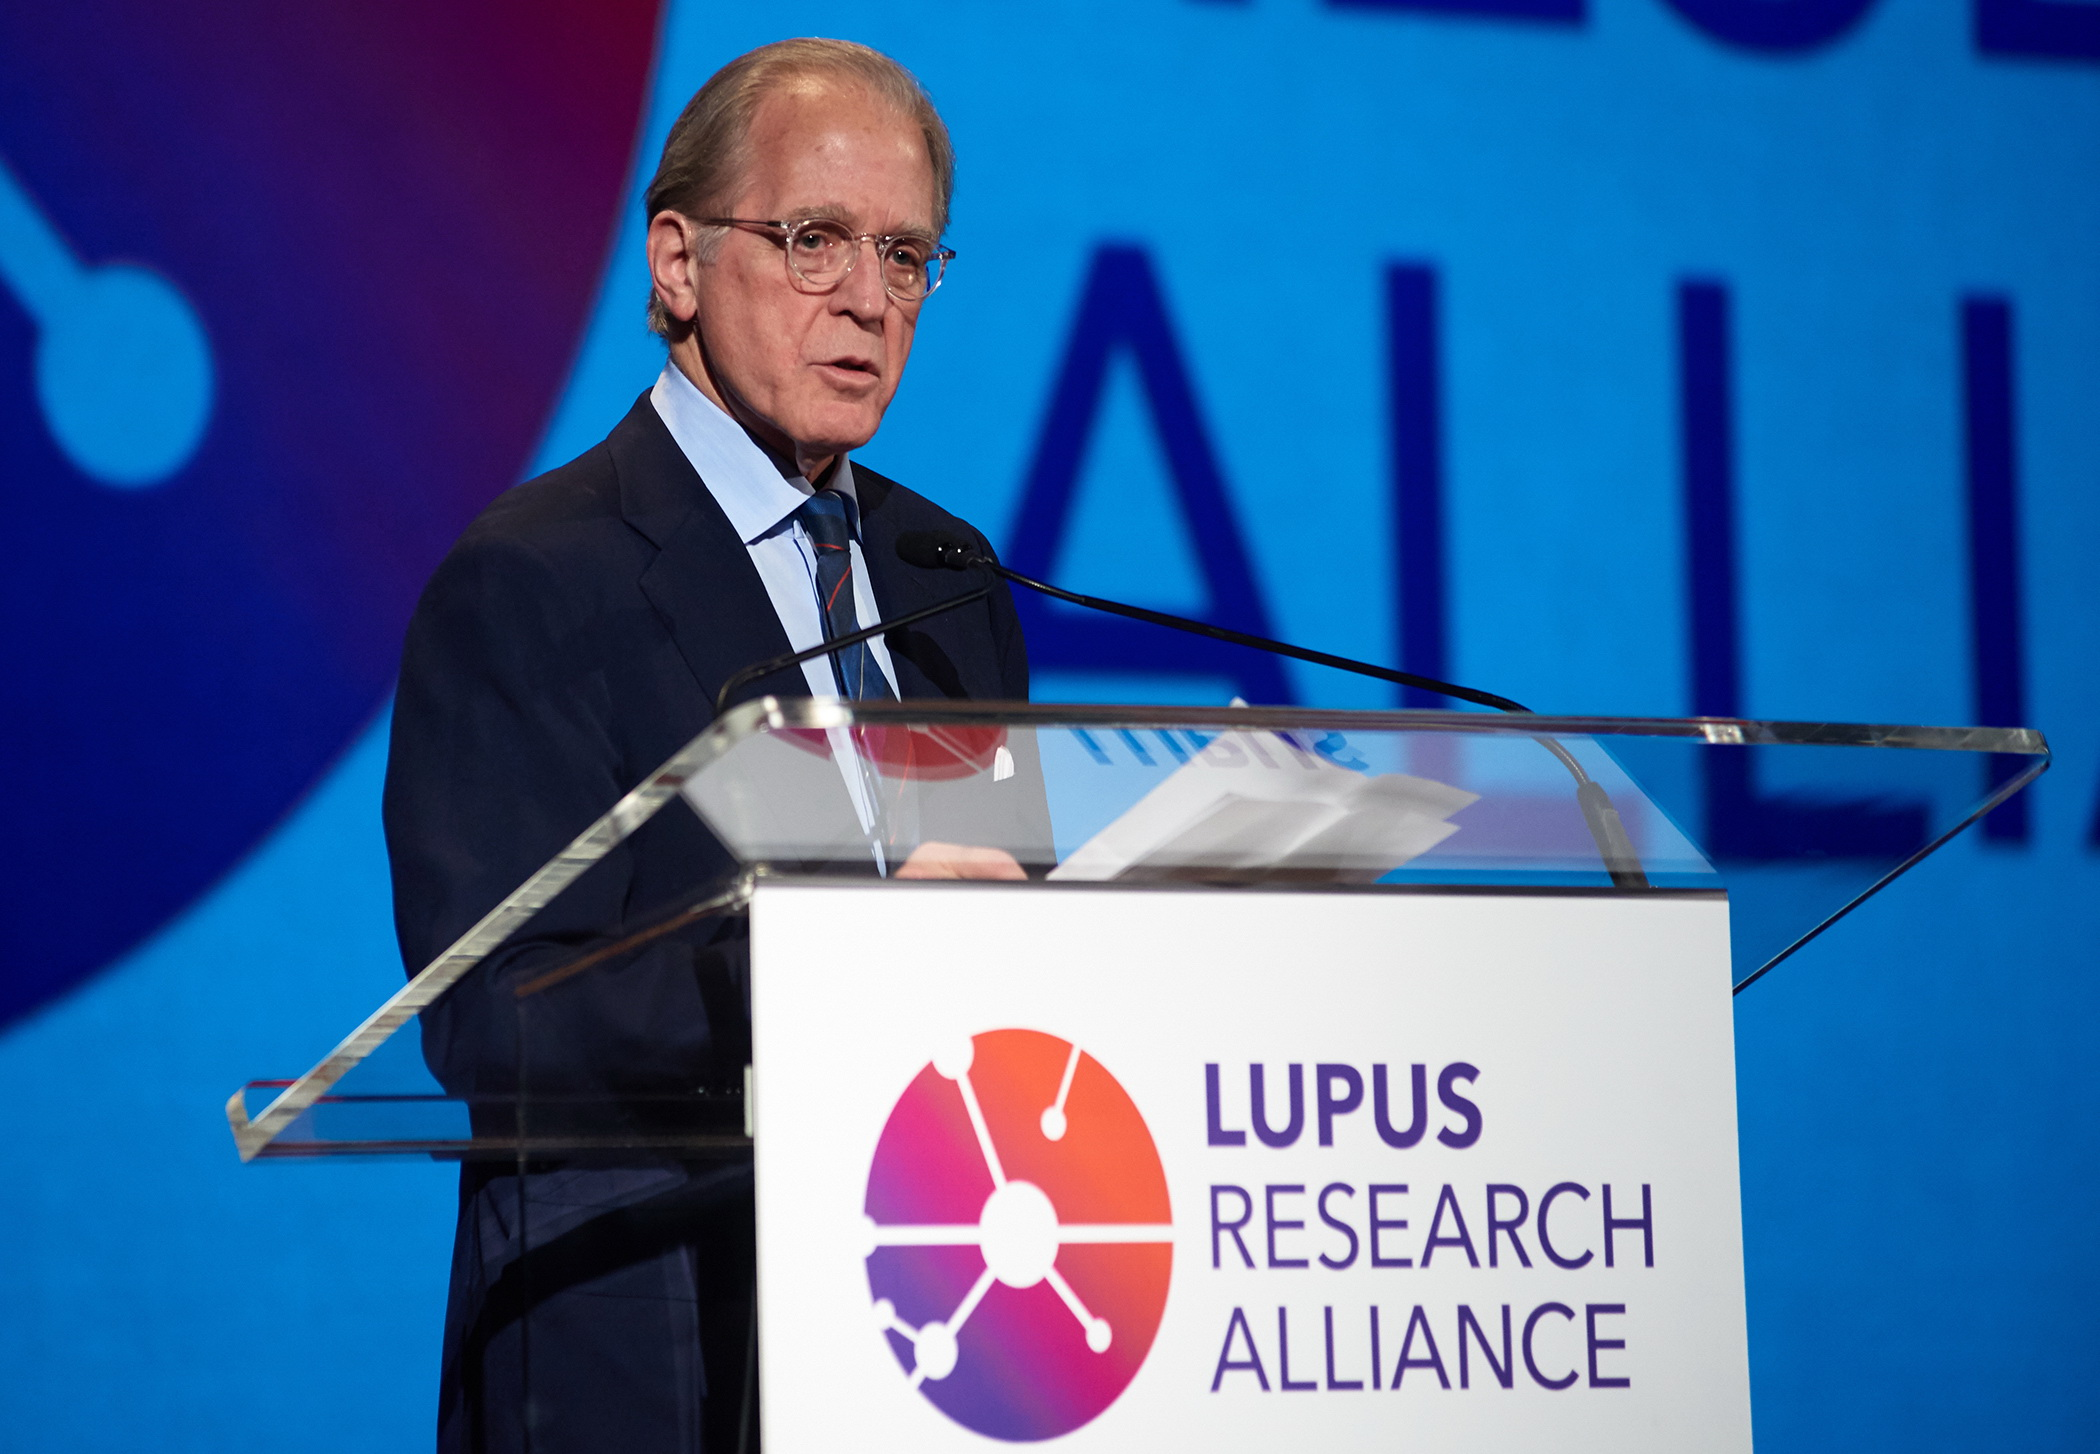 Lupus Research Alliance Inaugural Gala Honors Founding Board